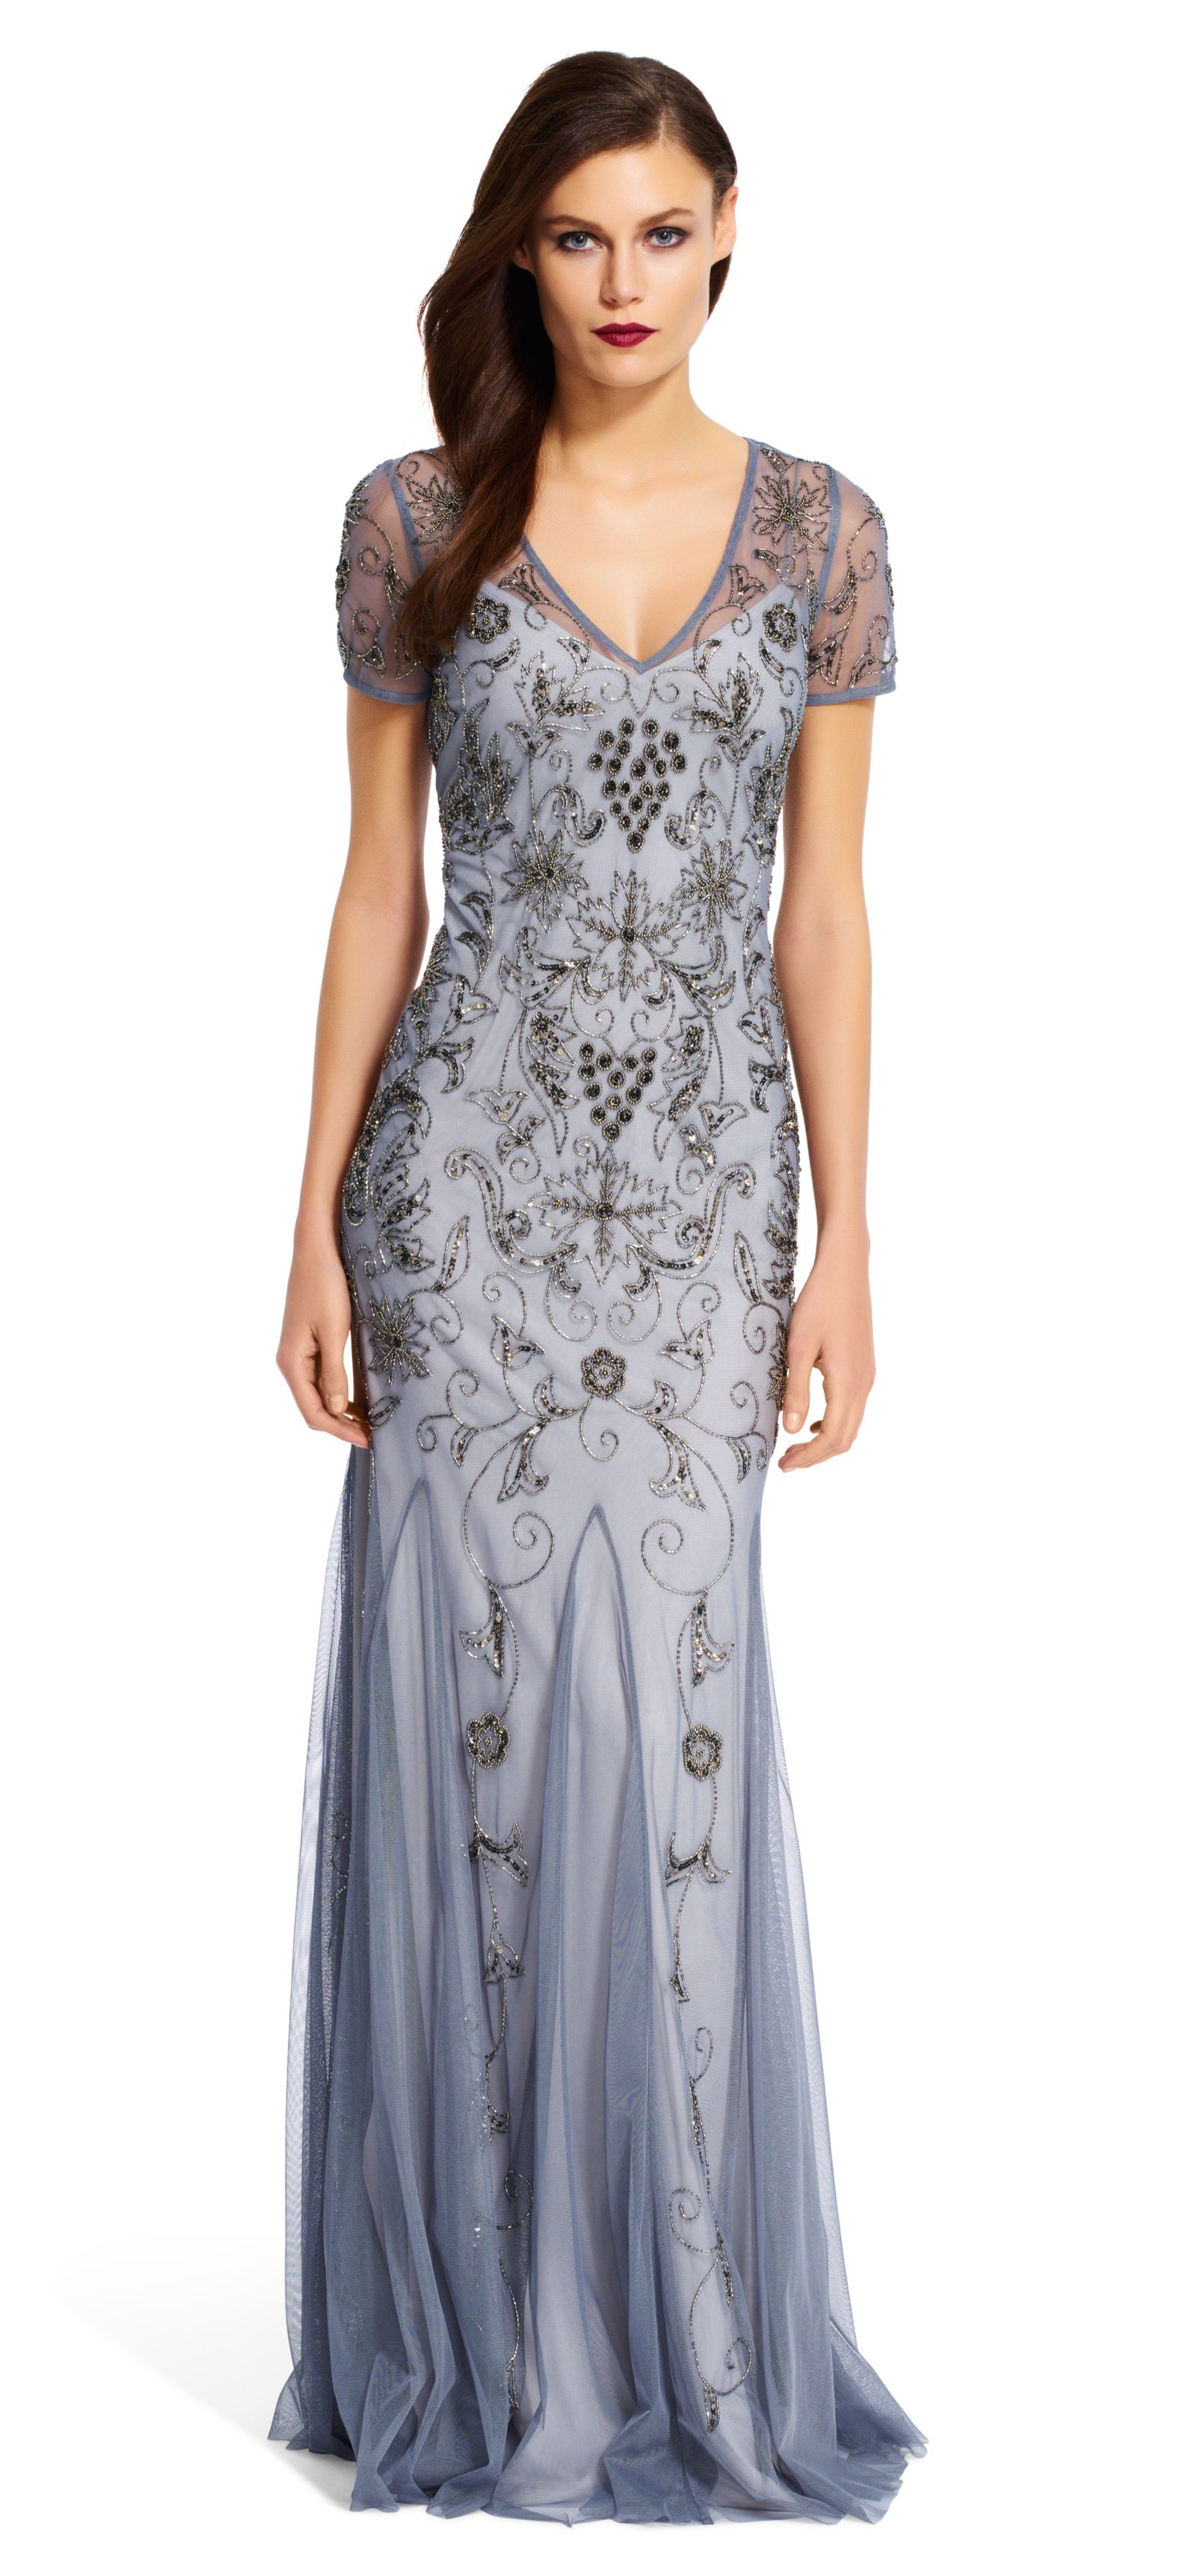 Beaded Mesh Mermaid Gown - Adrianna Papell | Purty Dresses ...